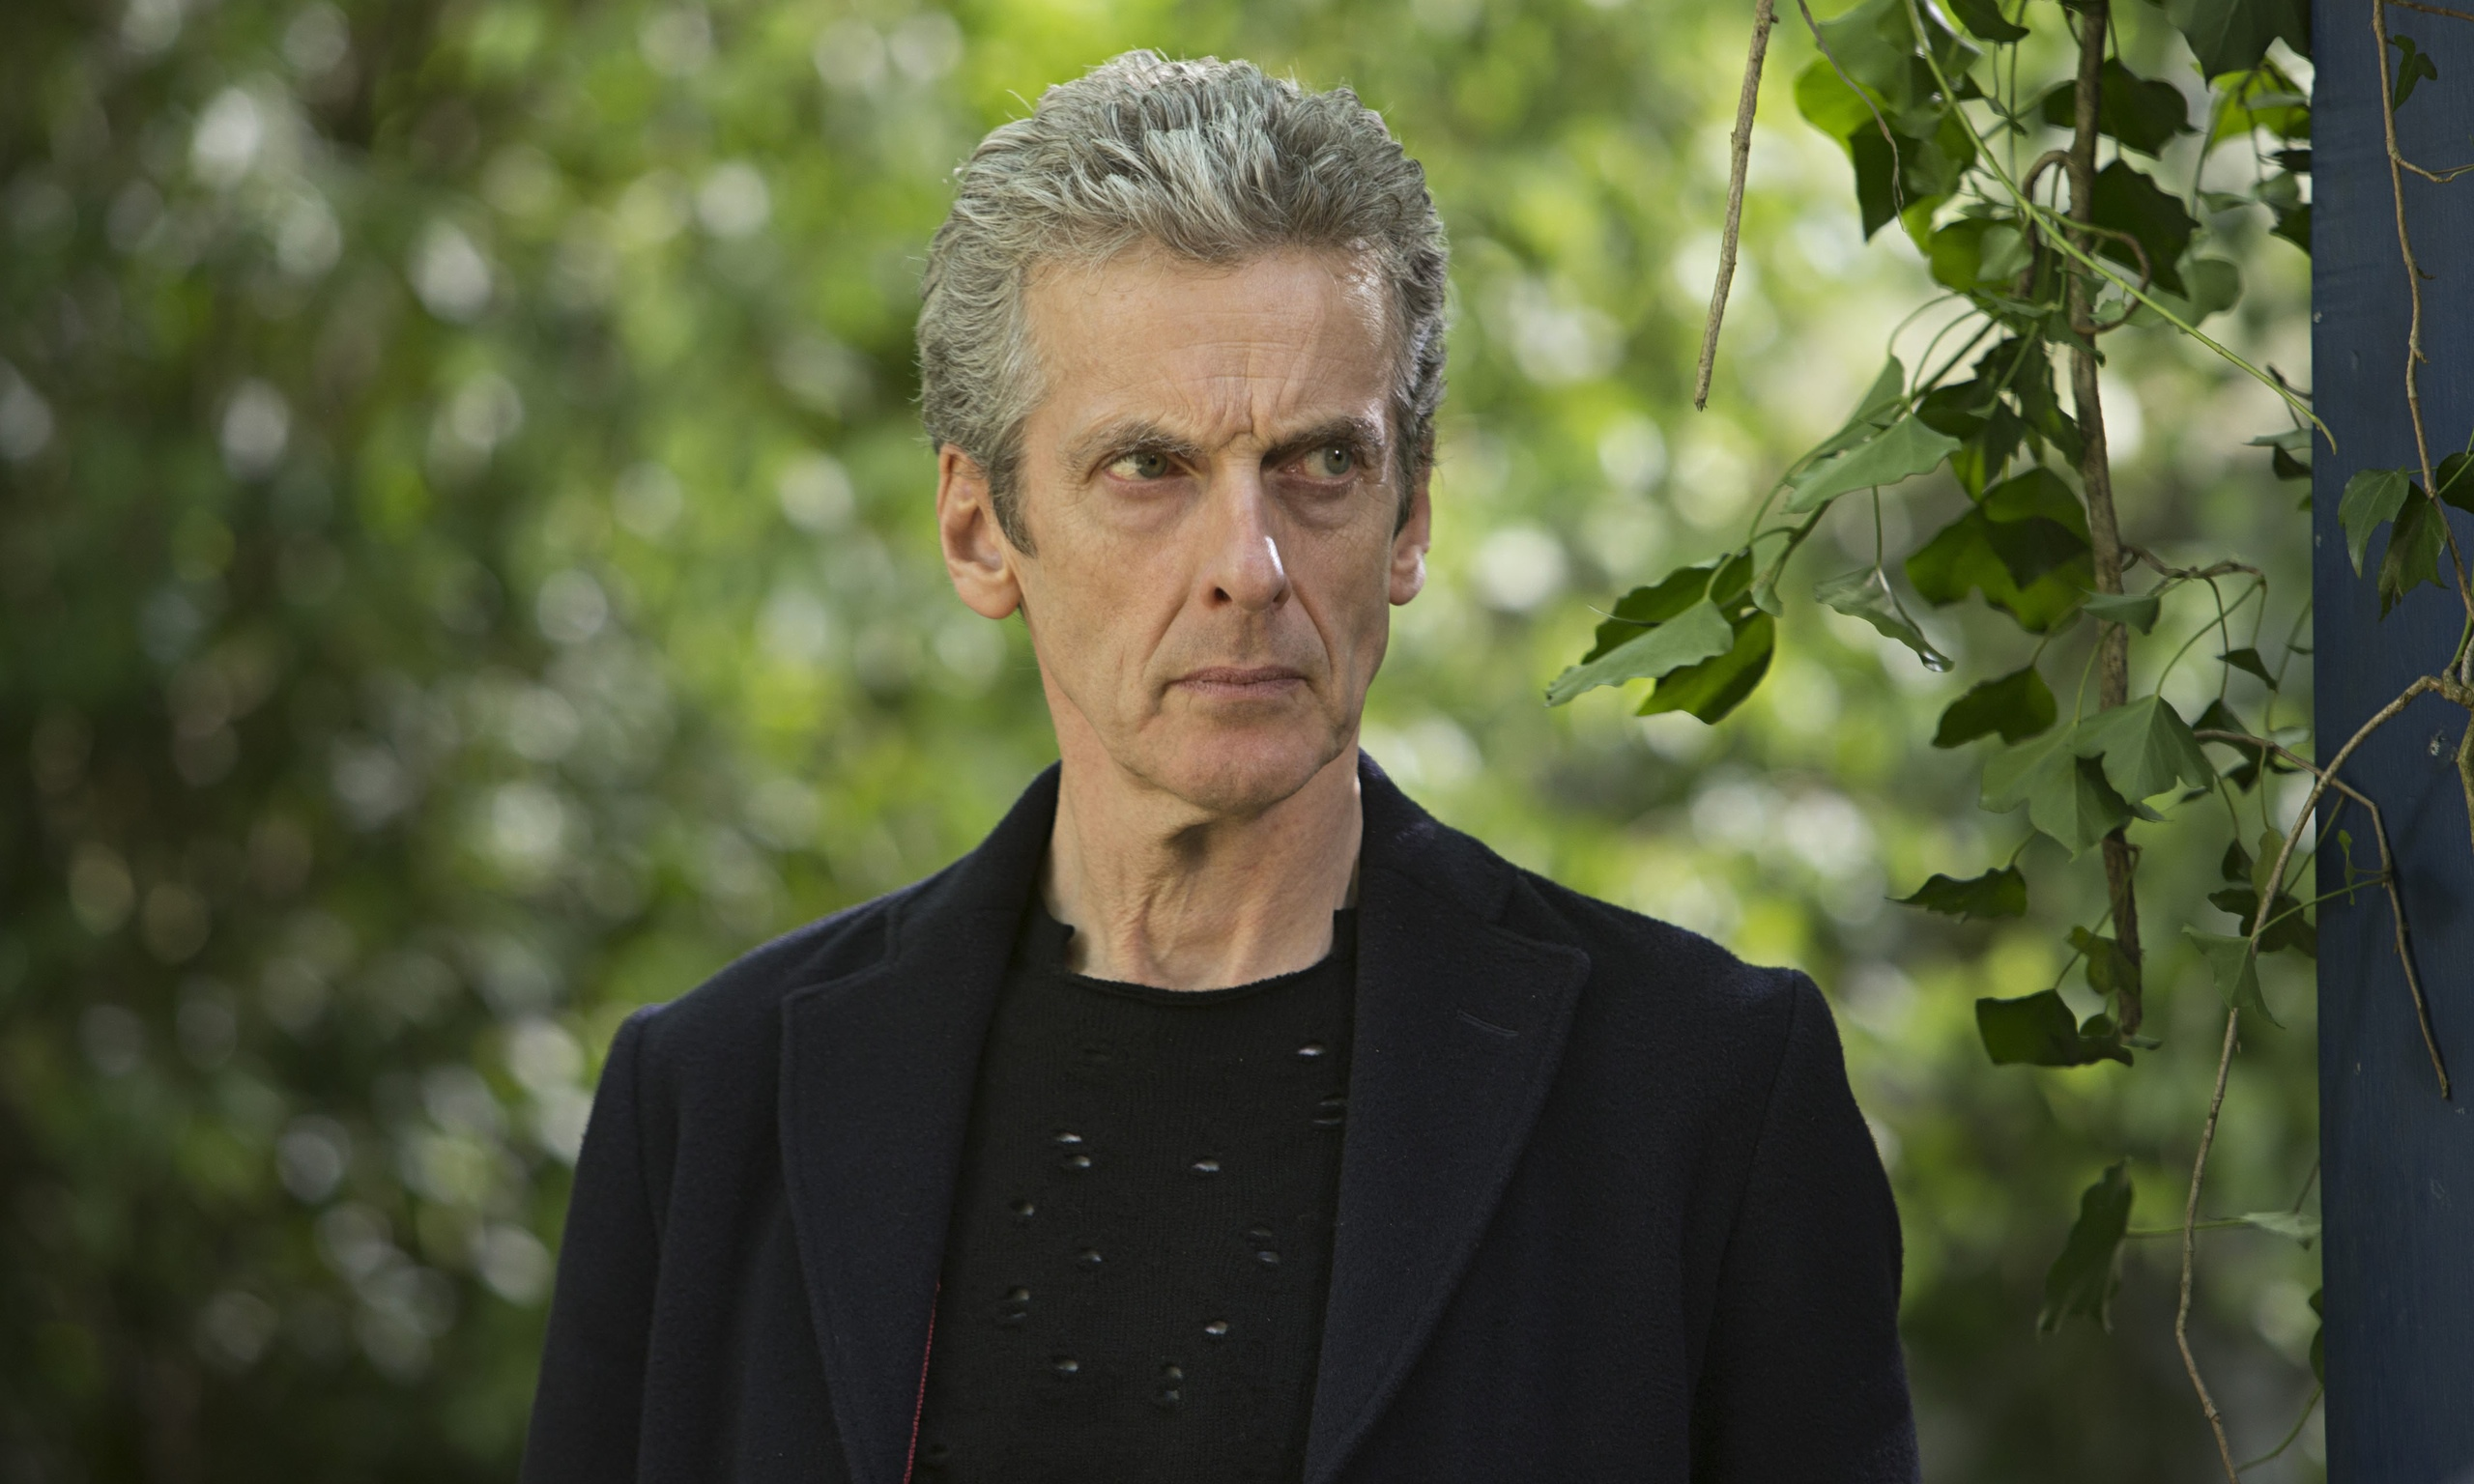 Doctor Who lands on Amazon Prime after being pulled from Netflix